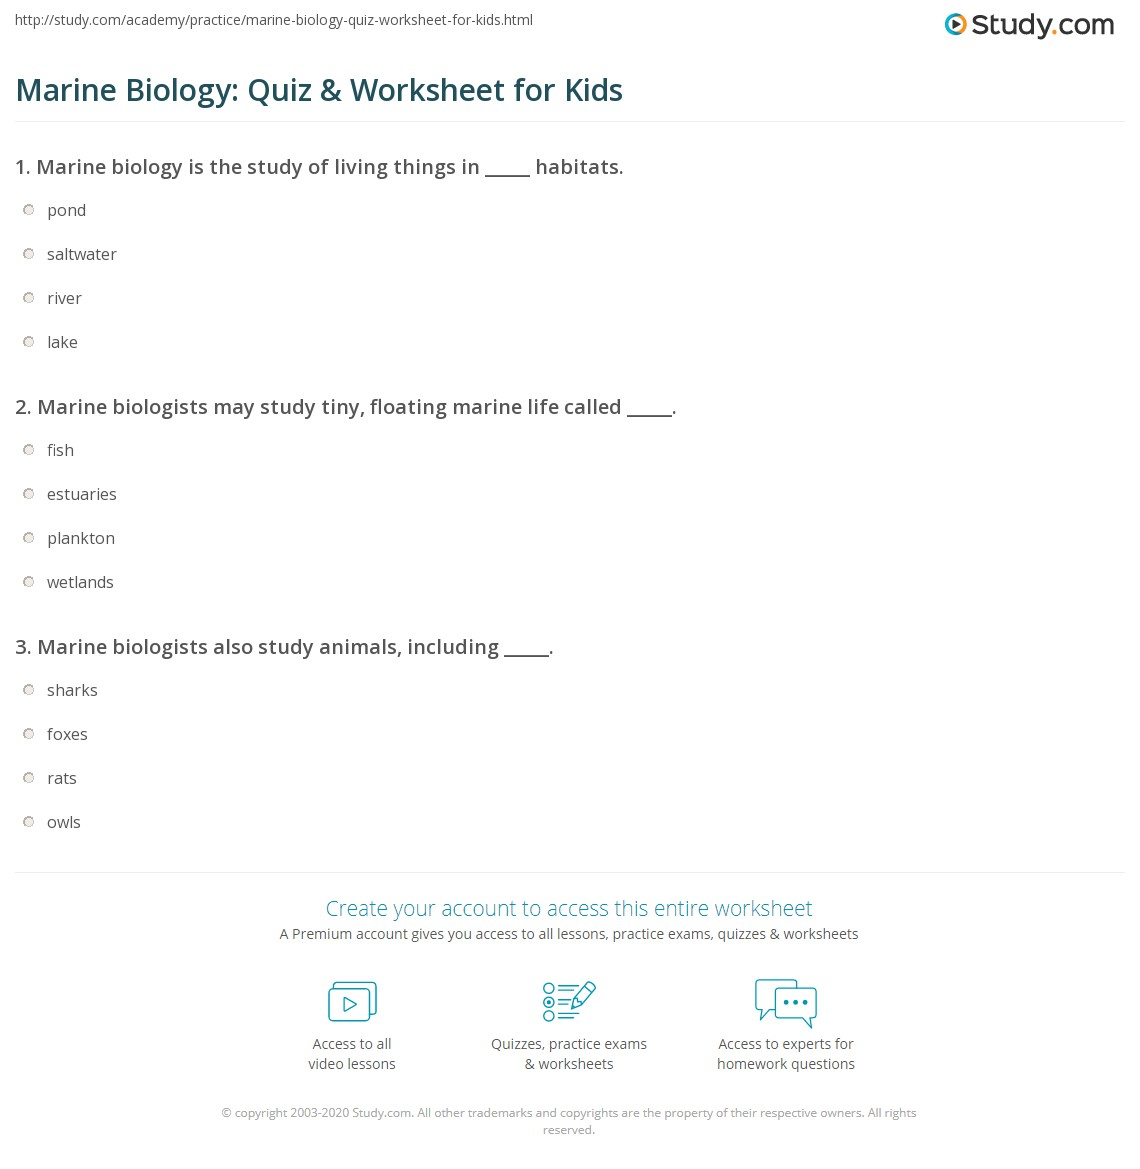 Free Worksheet Marine Counseling Worksheet usmc iram worksheet delibertad navmc 2795 counseling rringband